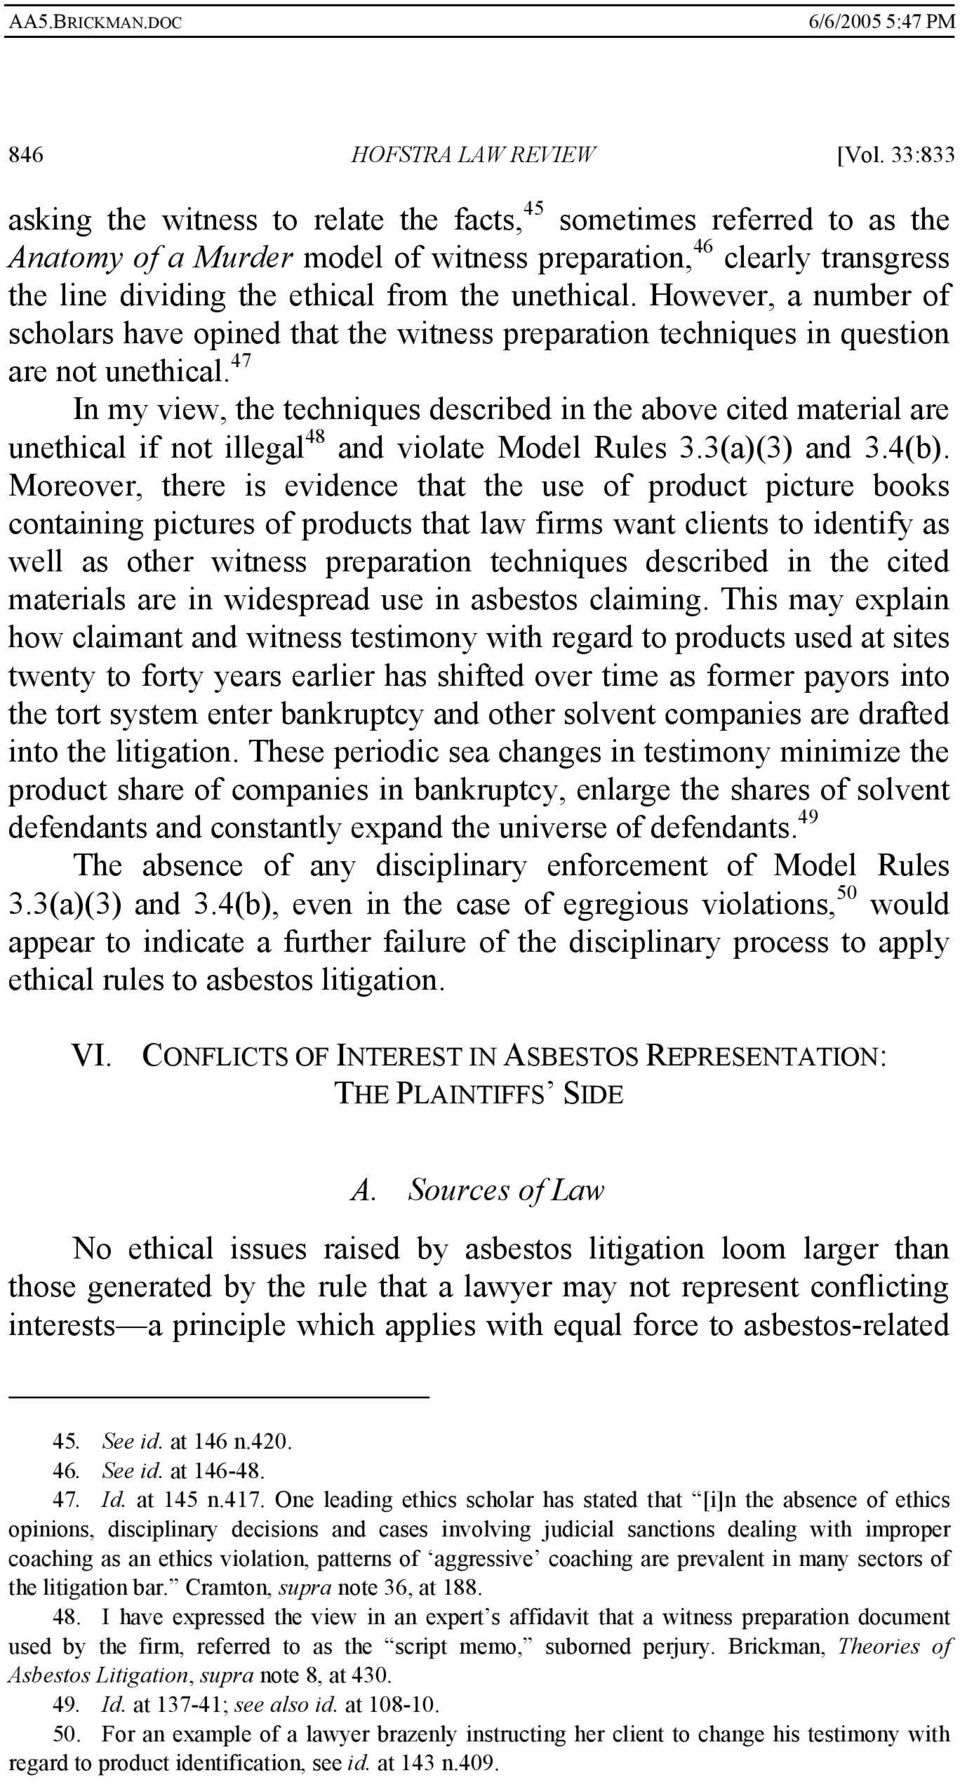 However, a number of scholars have opined that the witness preparation techniques in question are not unethical.